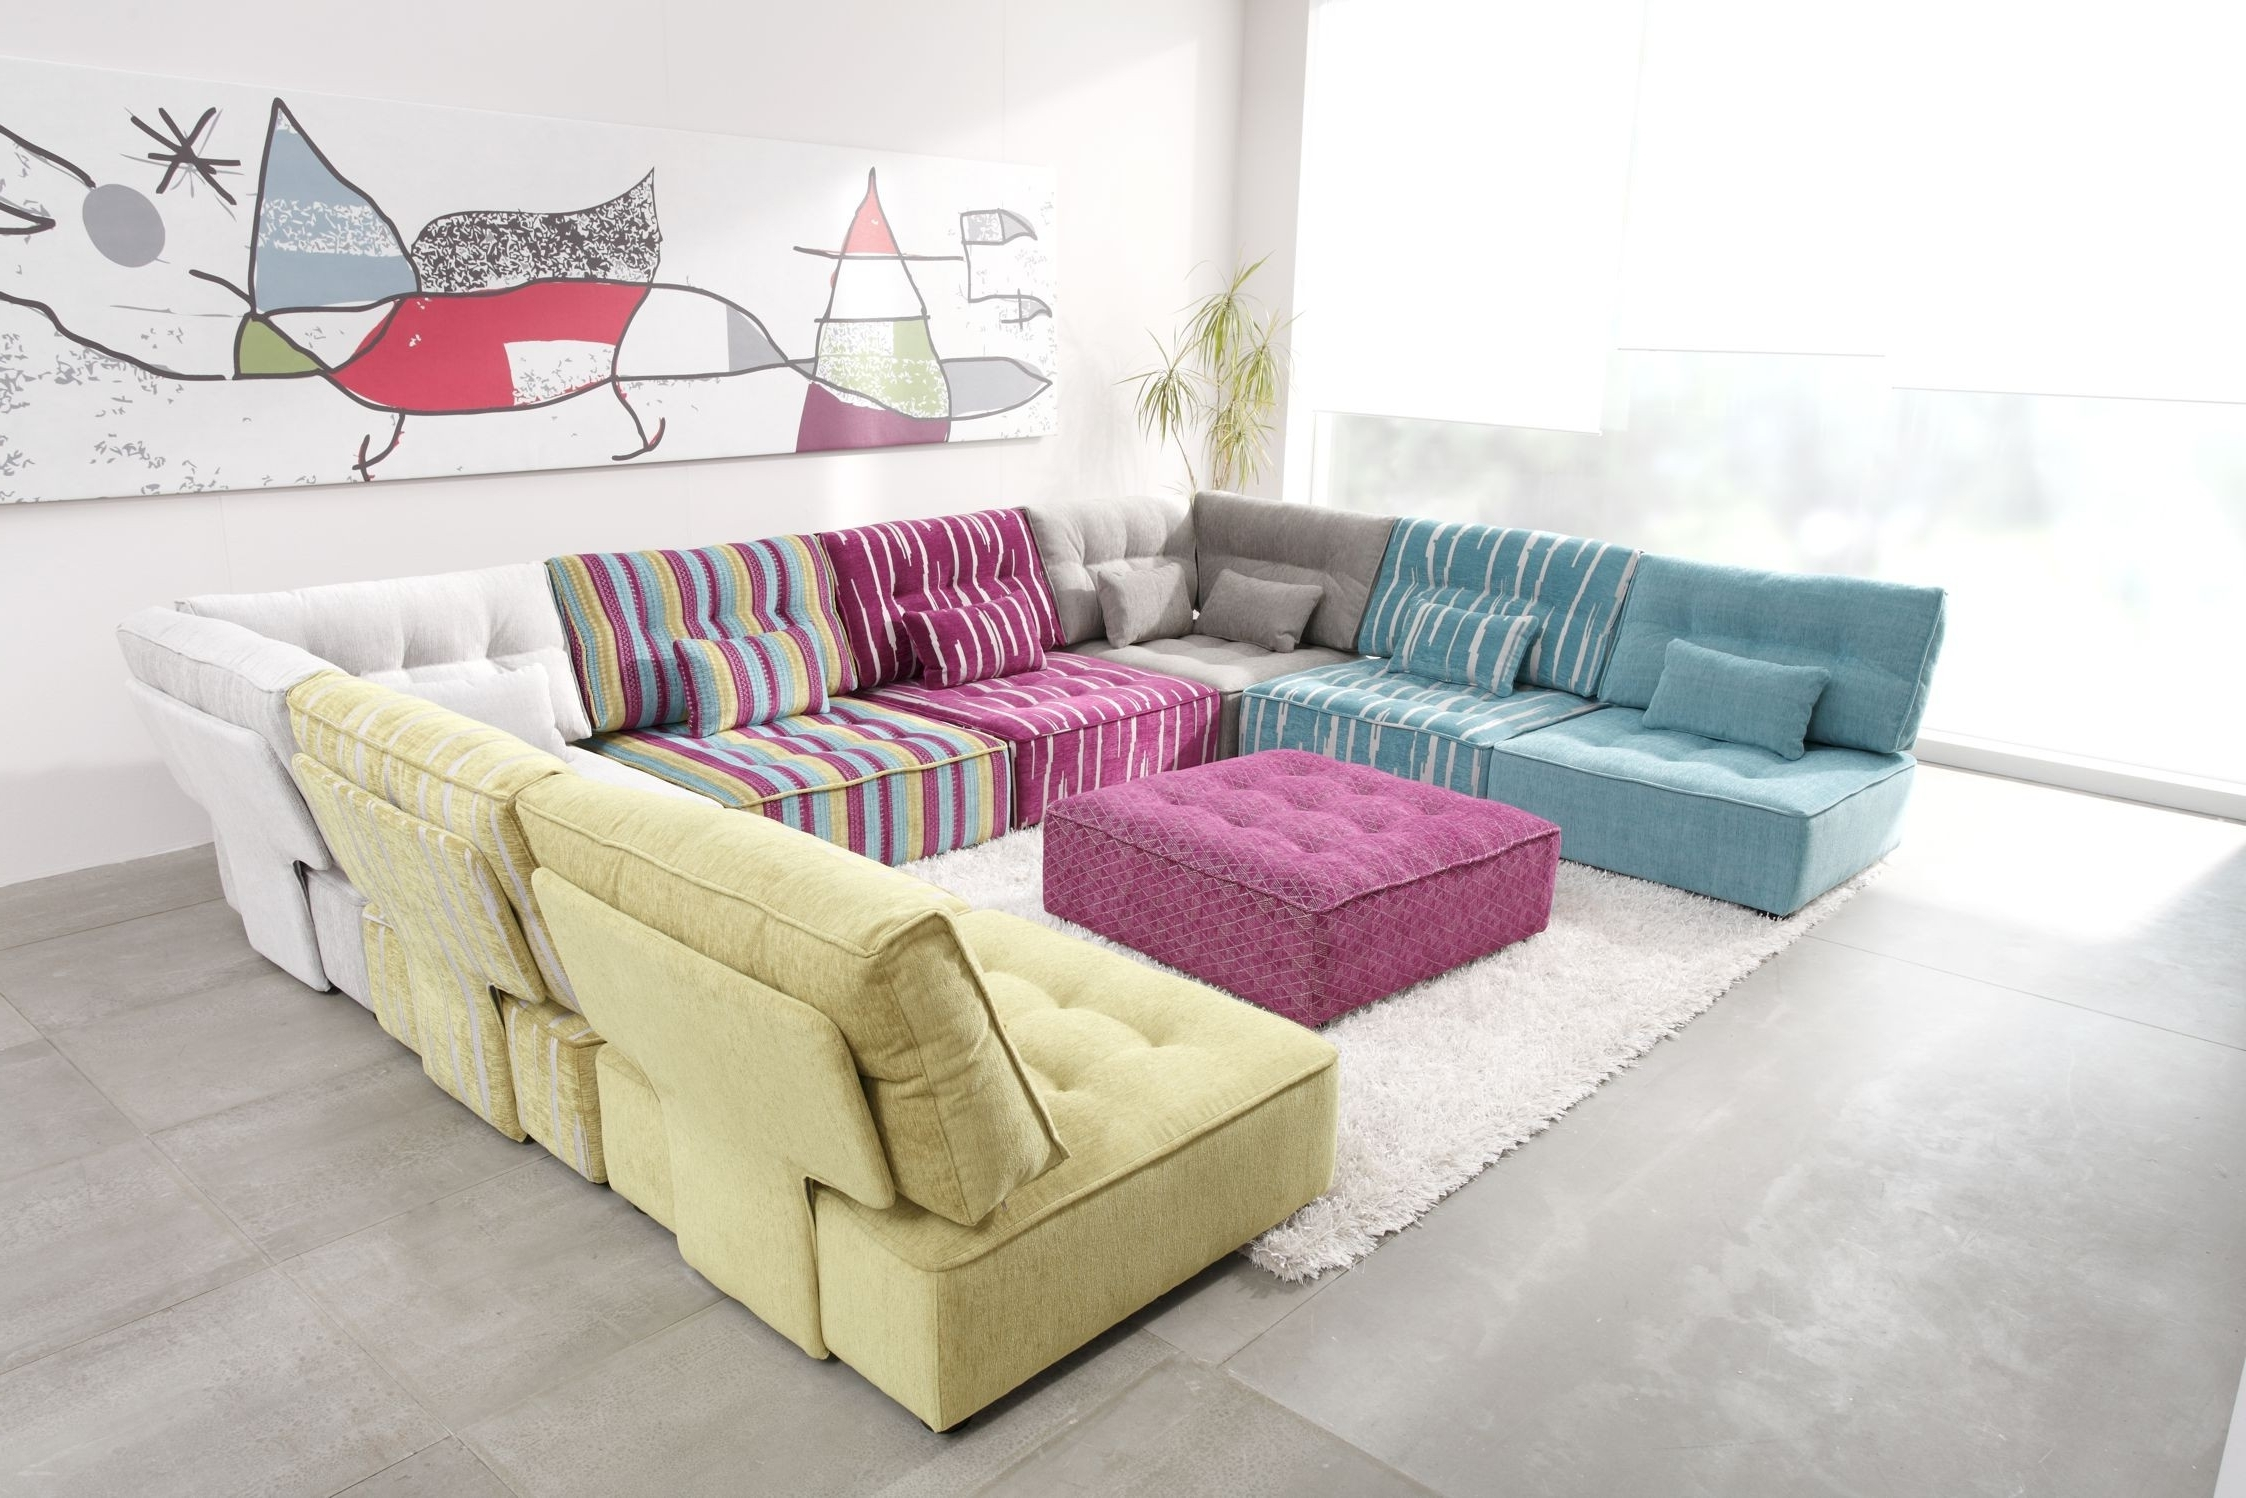 Well Liked Modular Sectional Sofas With Regard To Arianne Modern Modular Sectional Sofa (View 15 of 15)